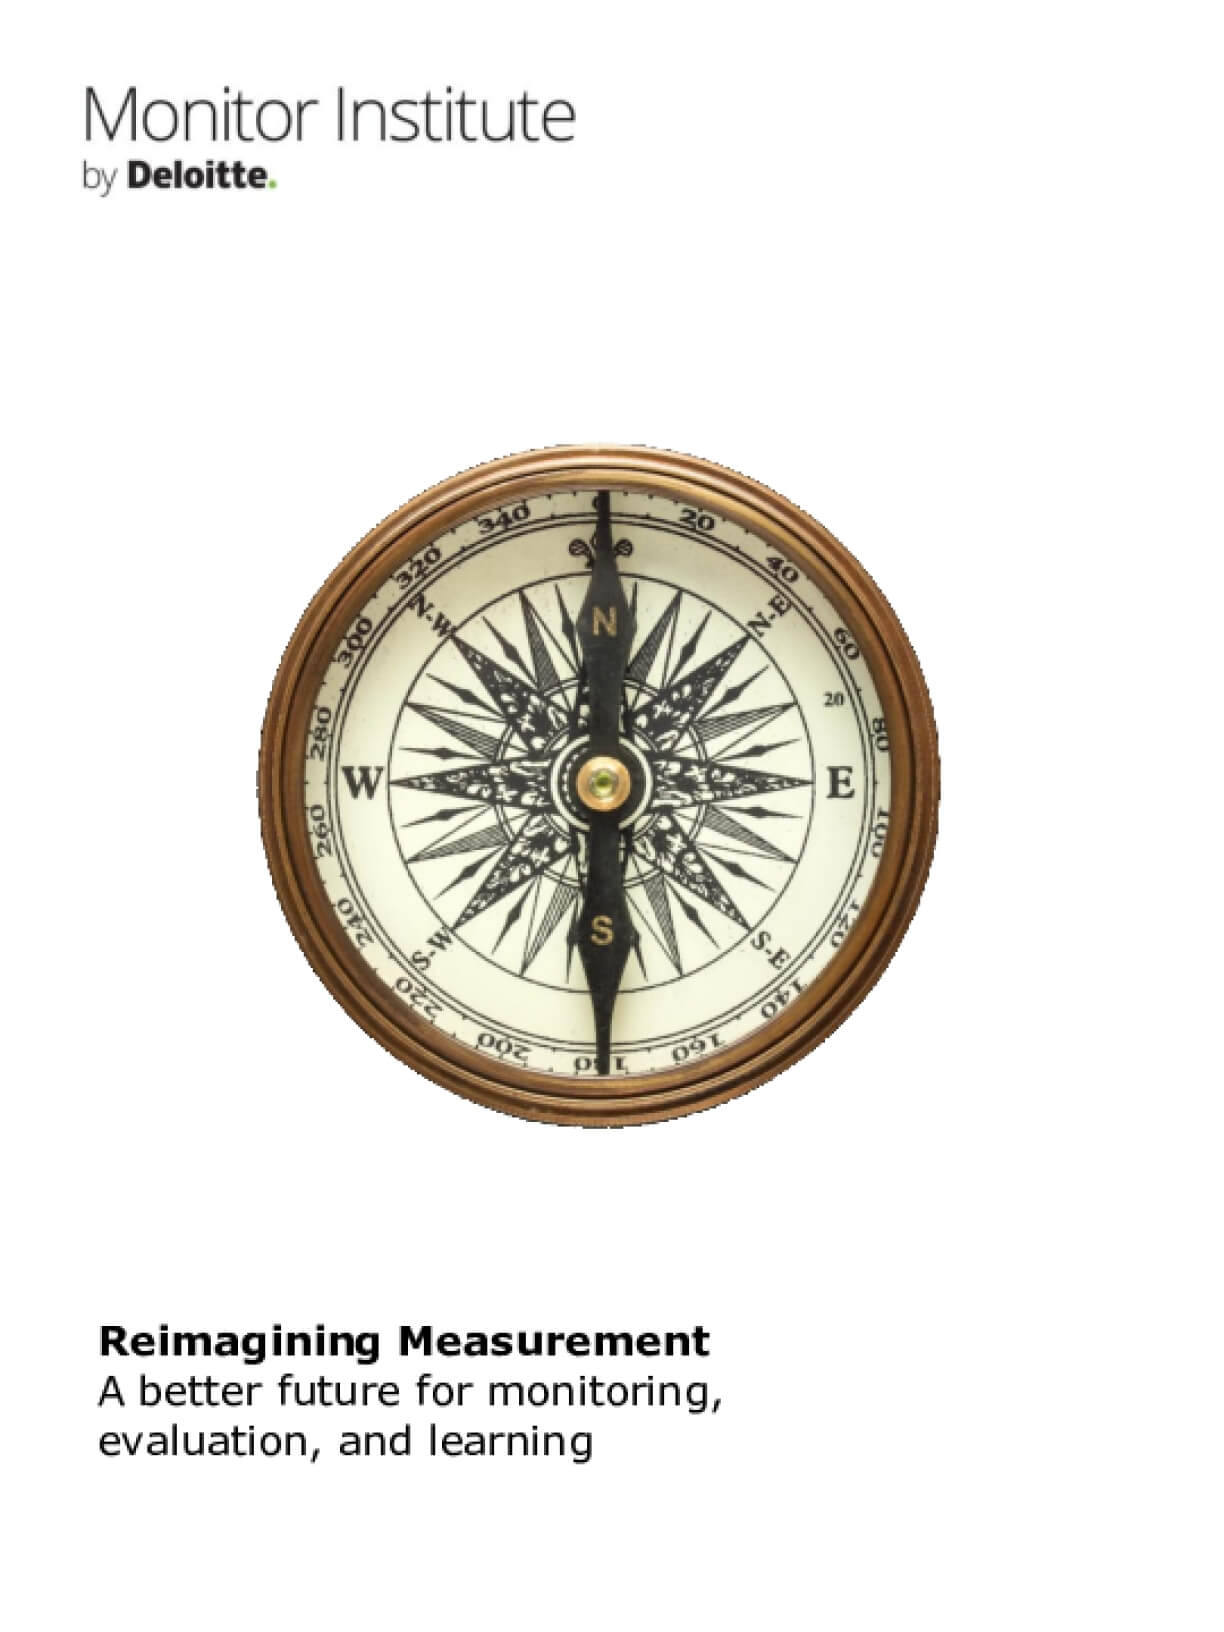 Reimagining Measurement: A Better Future for Monitoring, Evaluation, and Learning